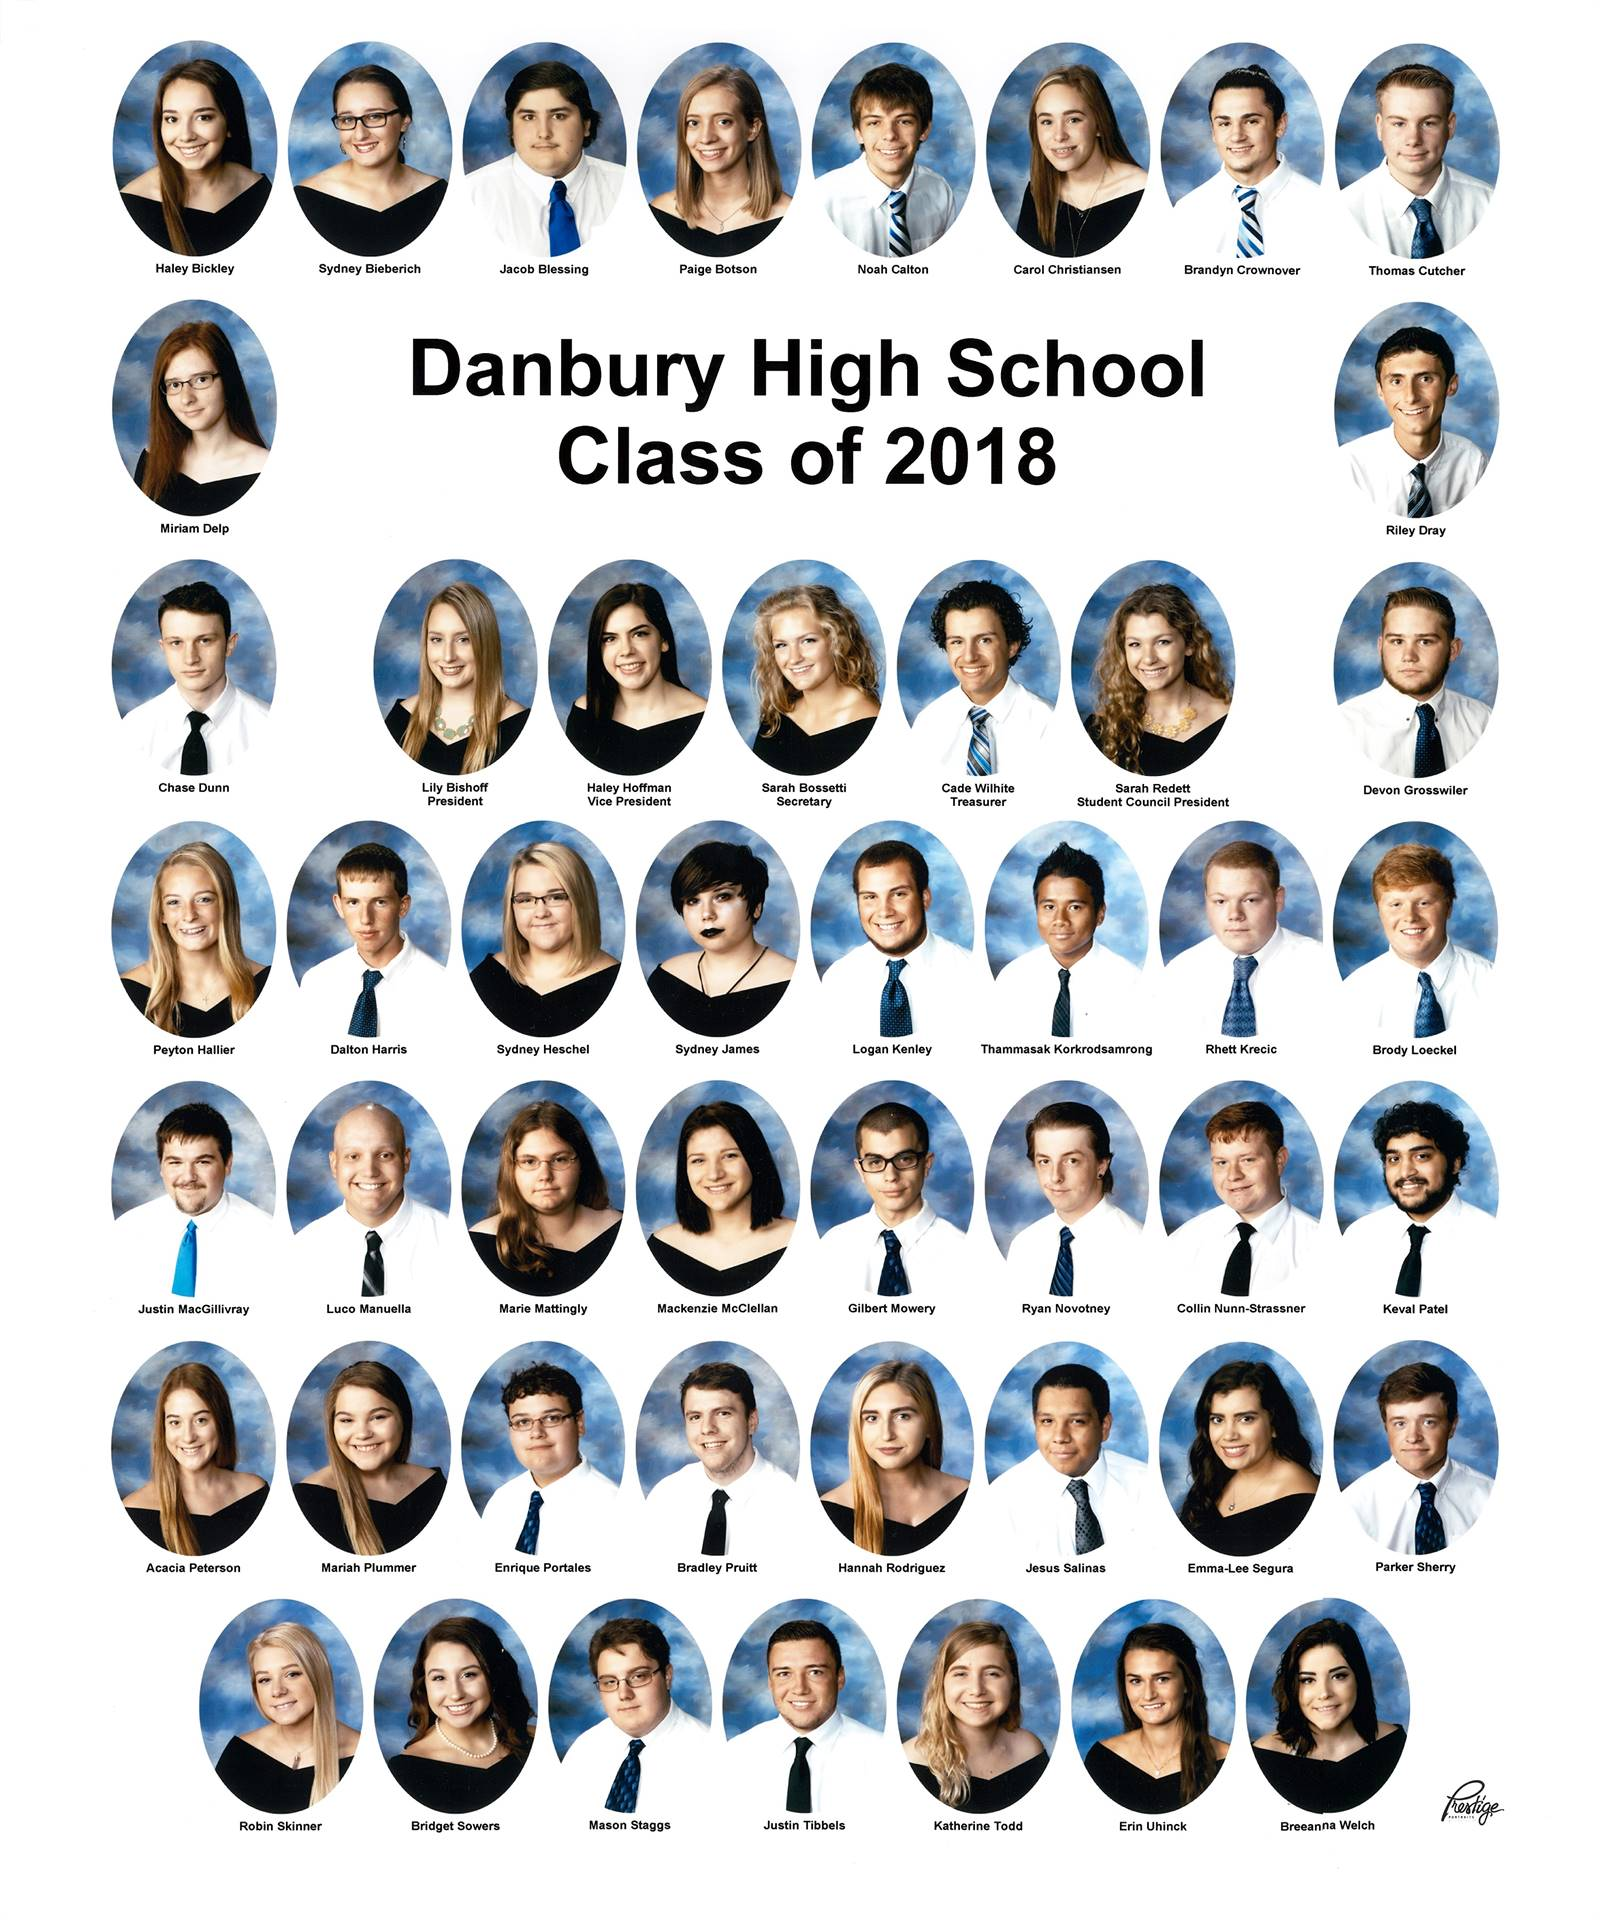 Danbury High School Class of 2018